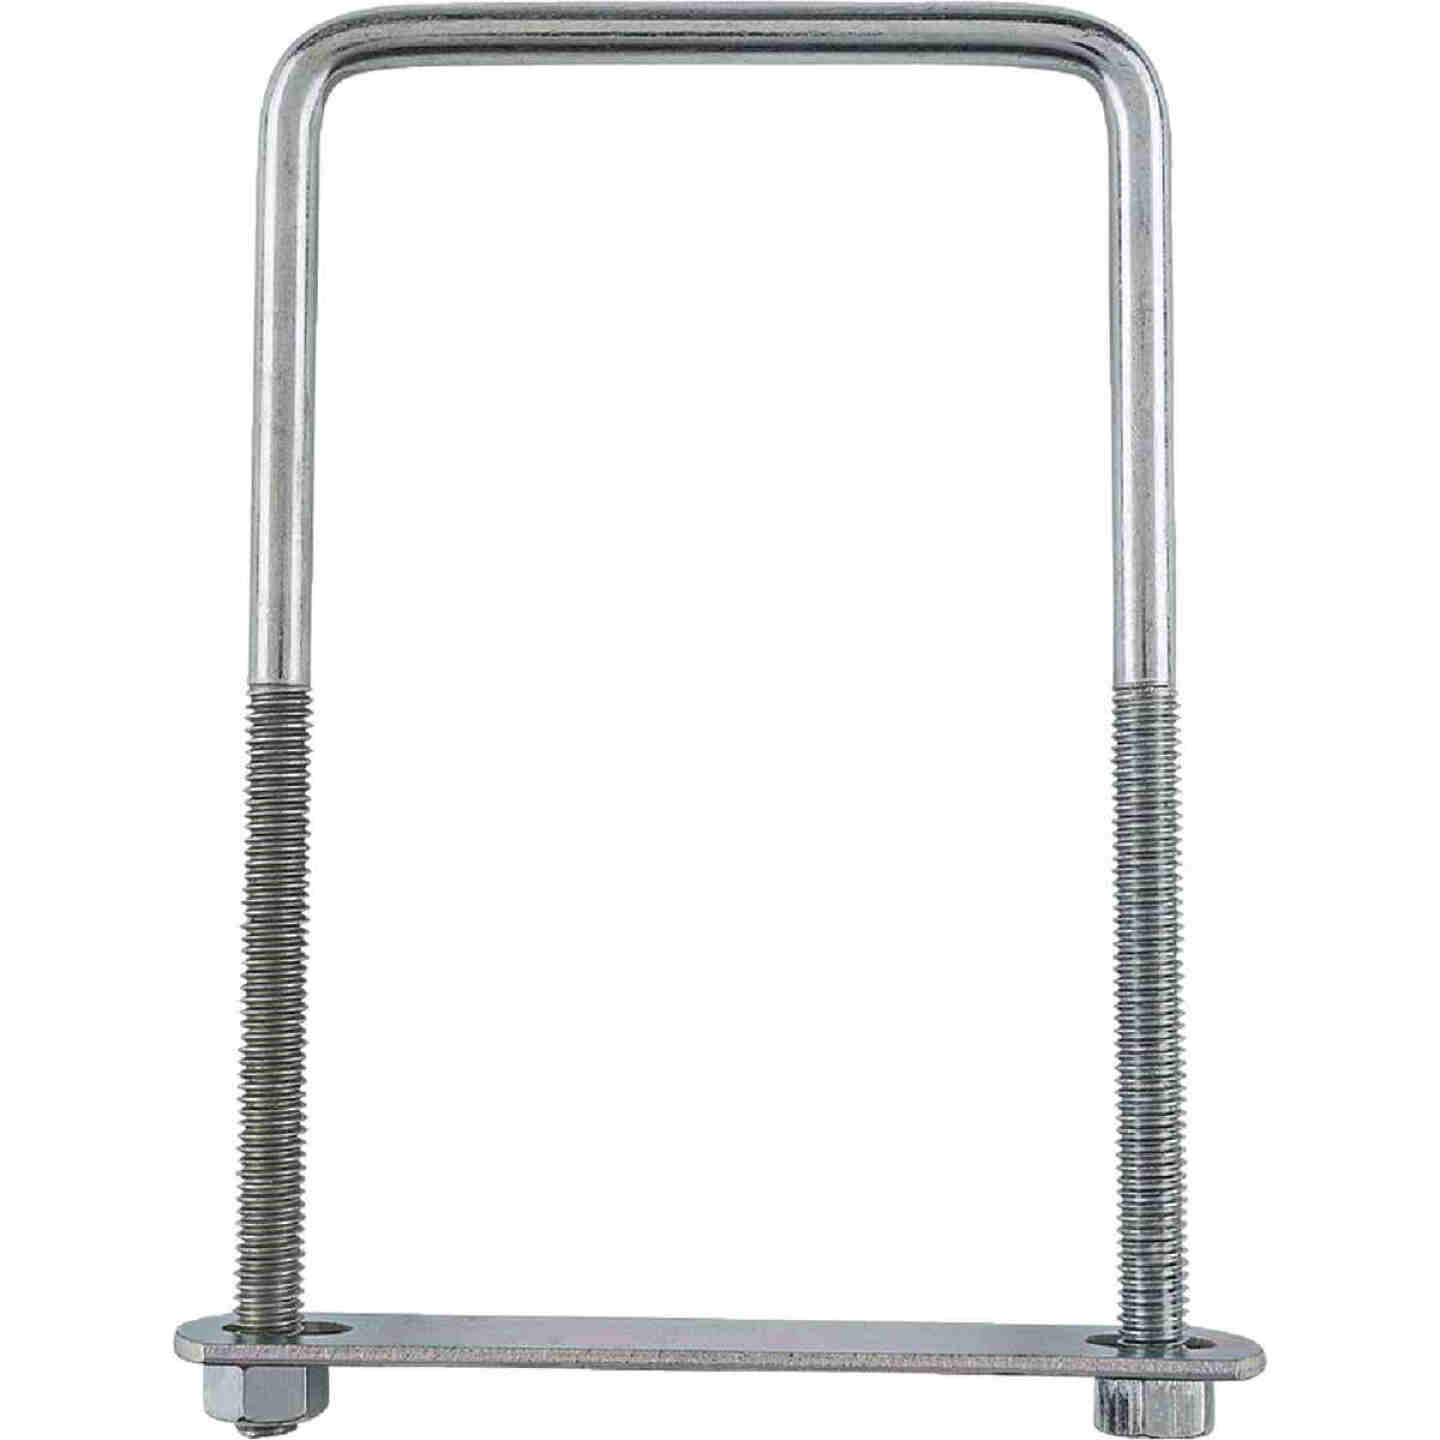 National 3/8 In. x 4 In. x 7 In. Zinc Square U Bolt Image 2